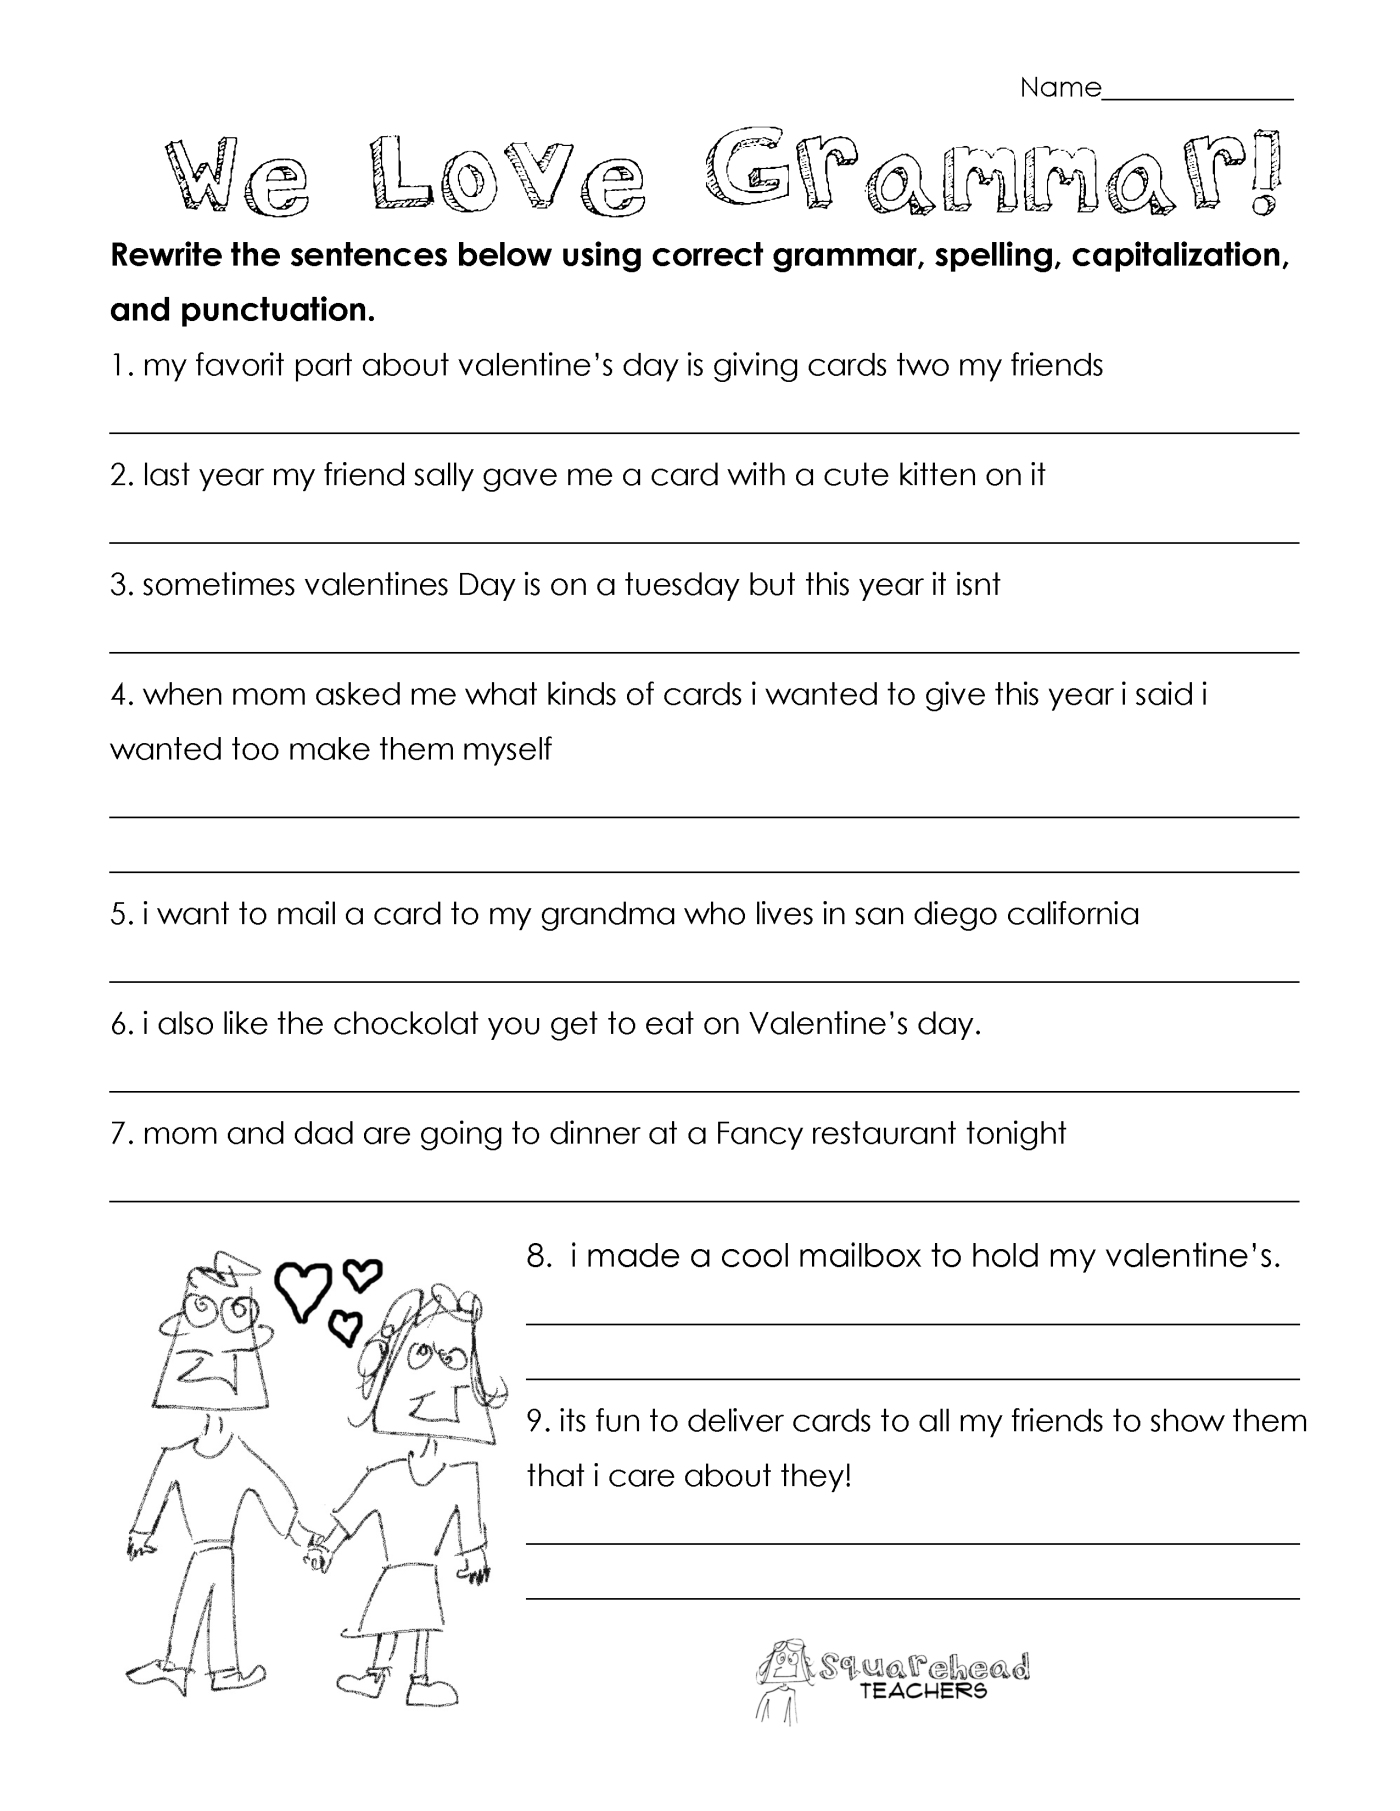 Worksheet 6th Grade English Grammar Worksheets grammar worksheet davezan worksheets grade 3 bloggakuten